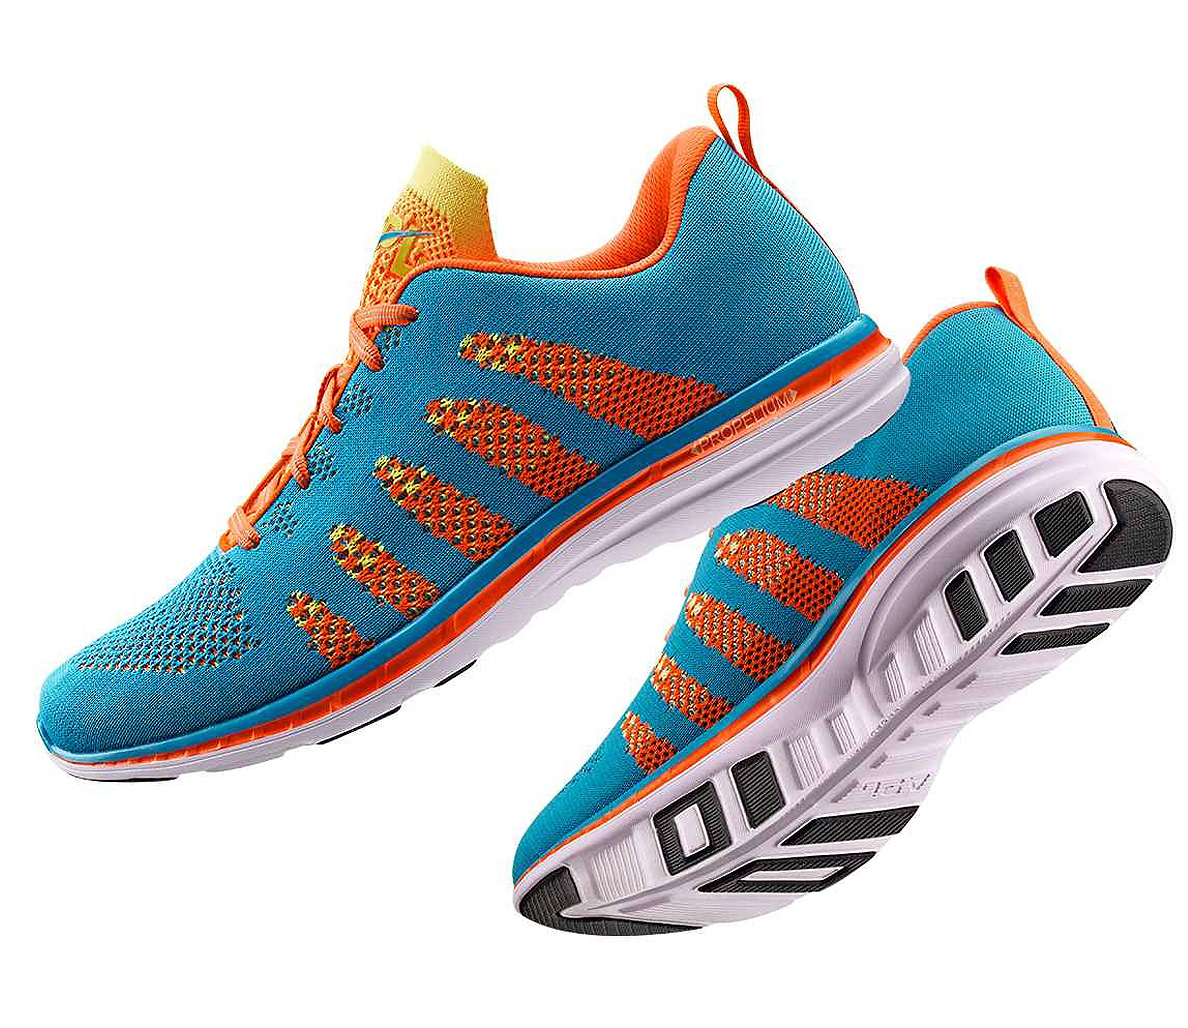 Running stylish shoes video